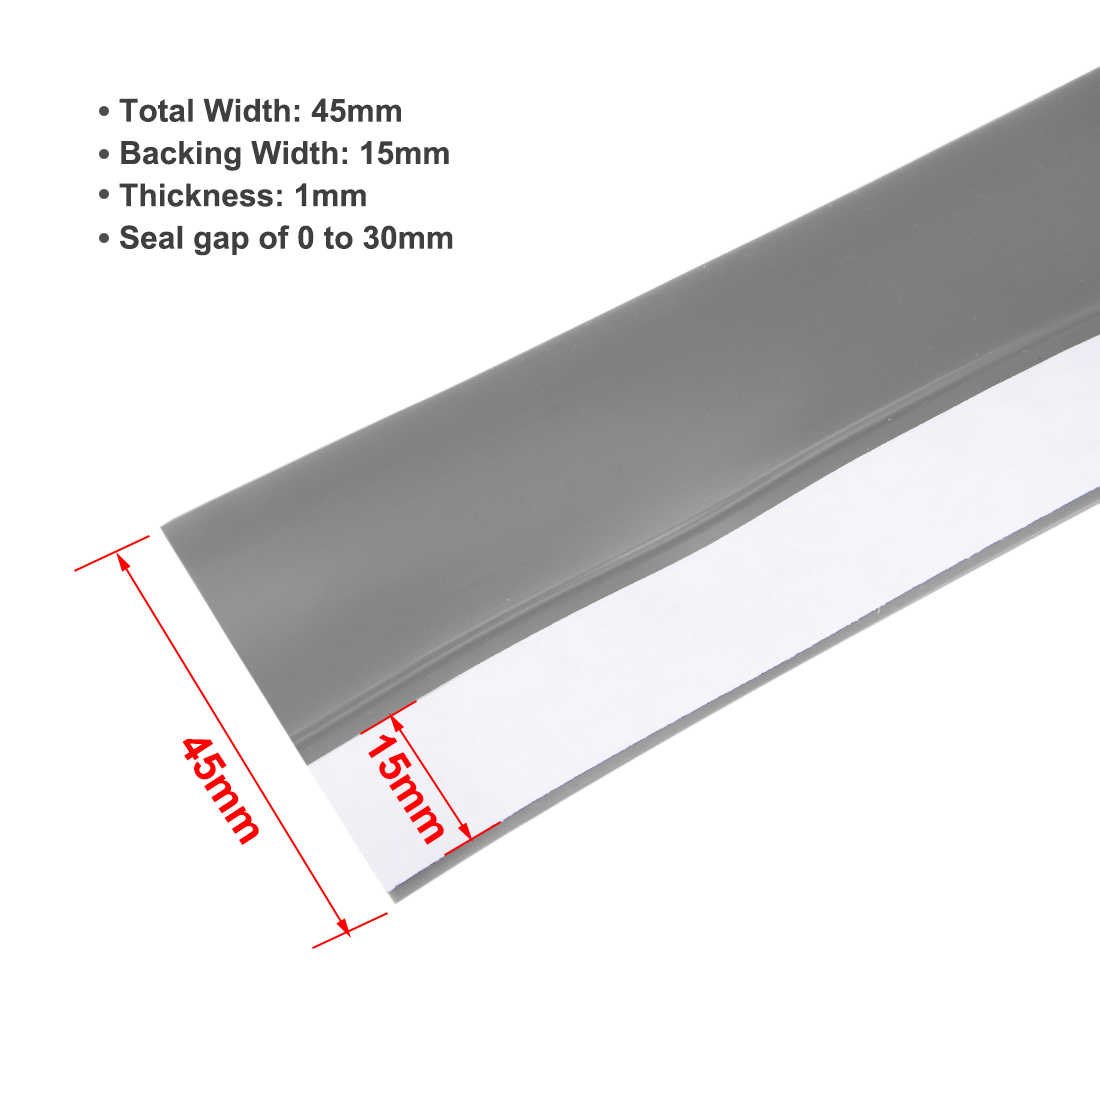 Unique Bargains 1-3/4'(45mm) Width 2M Long Weather Stripping Frameless Door Bottom Seal Gray